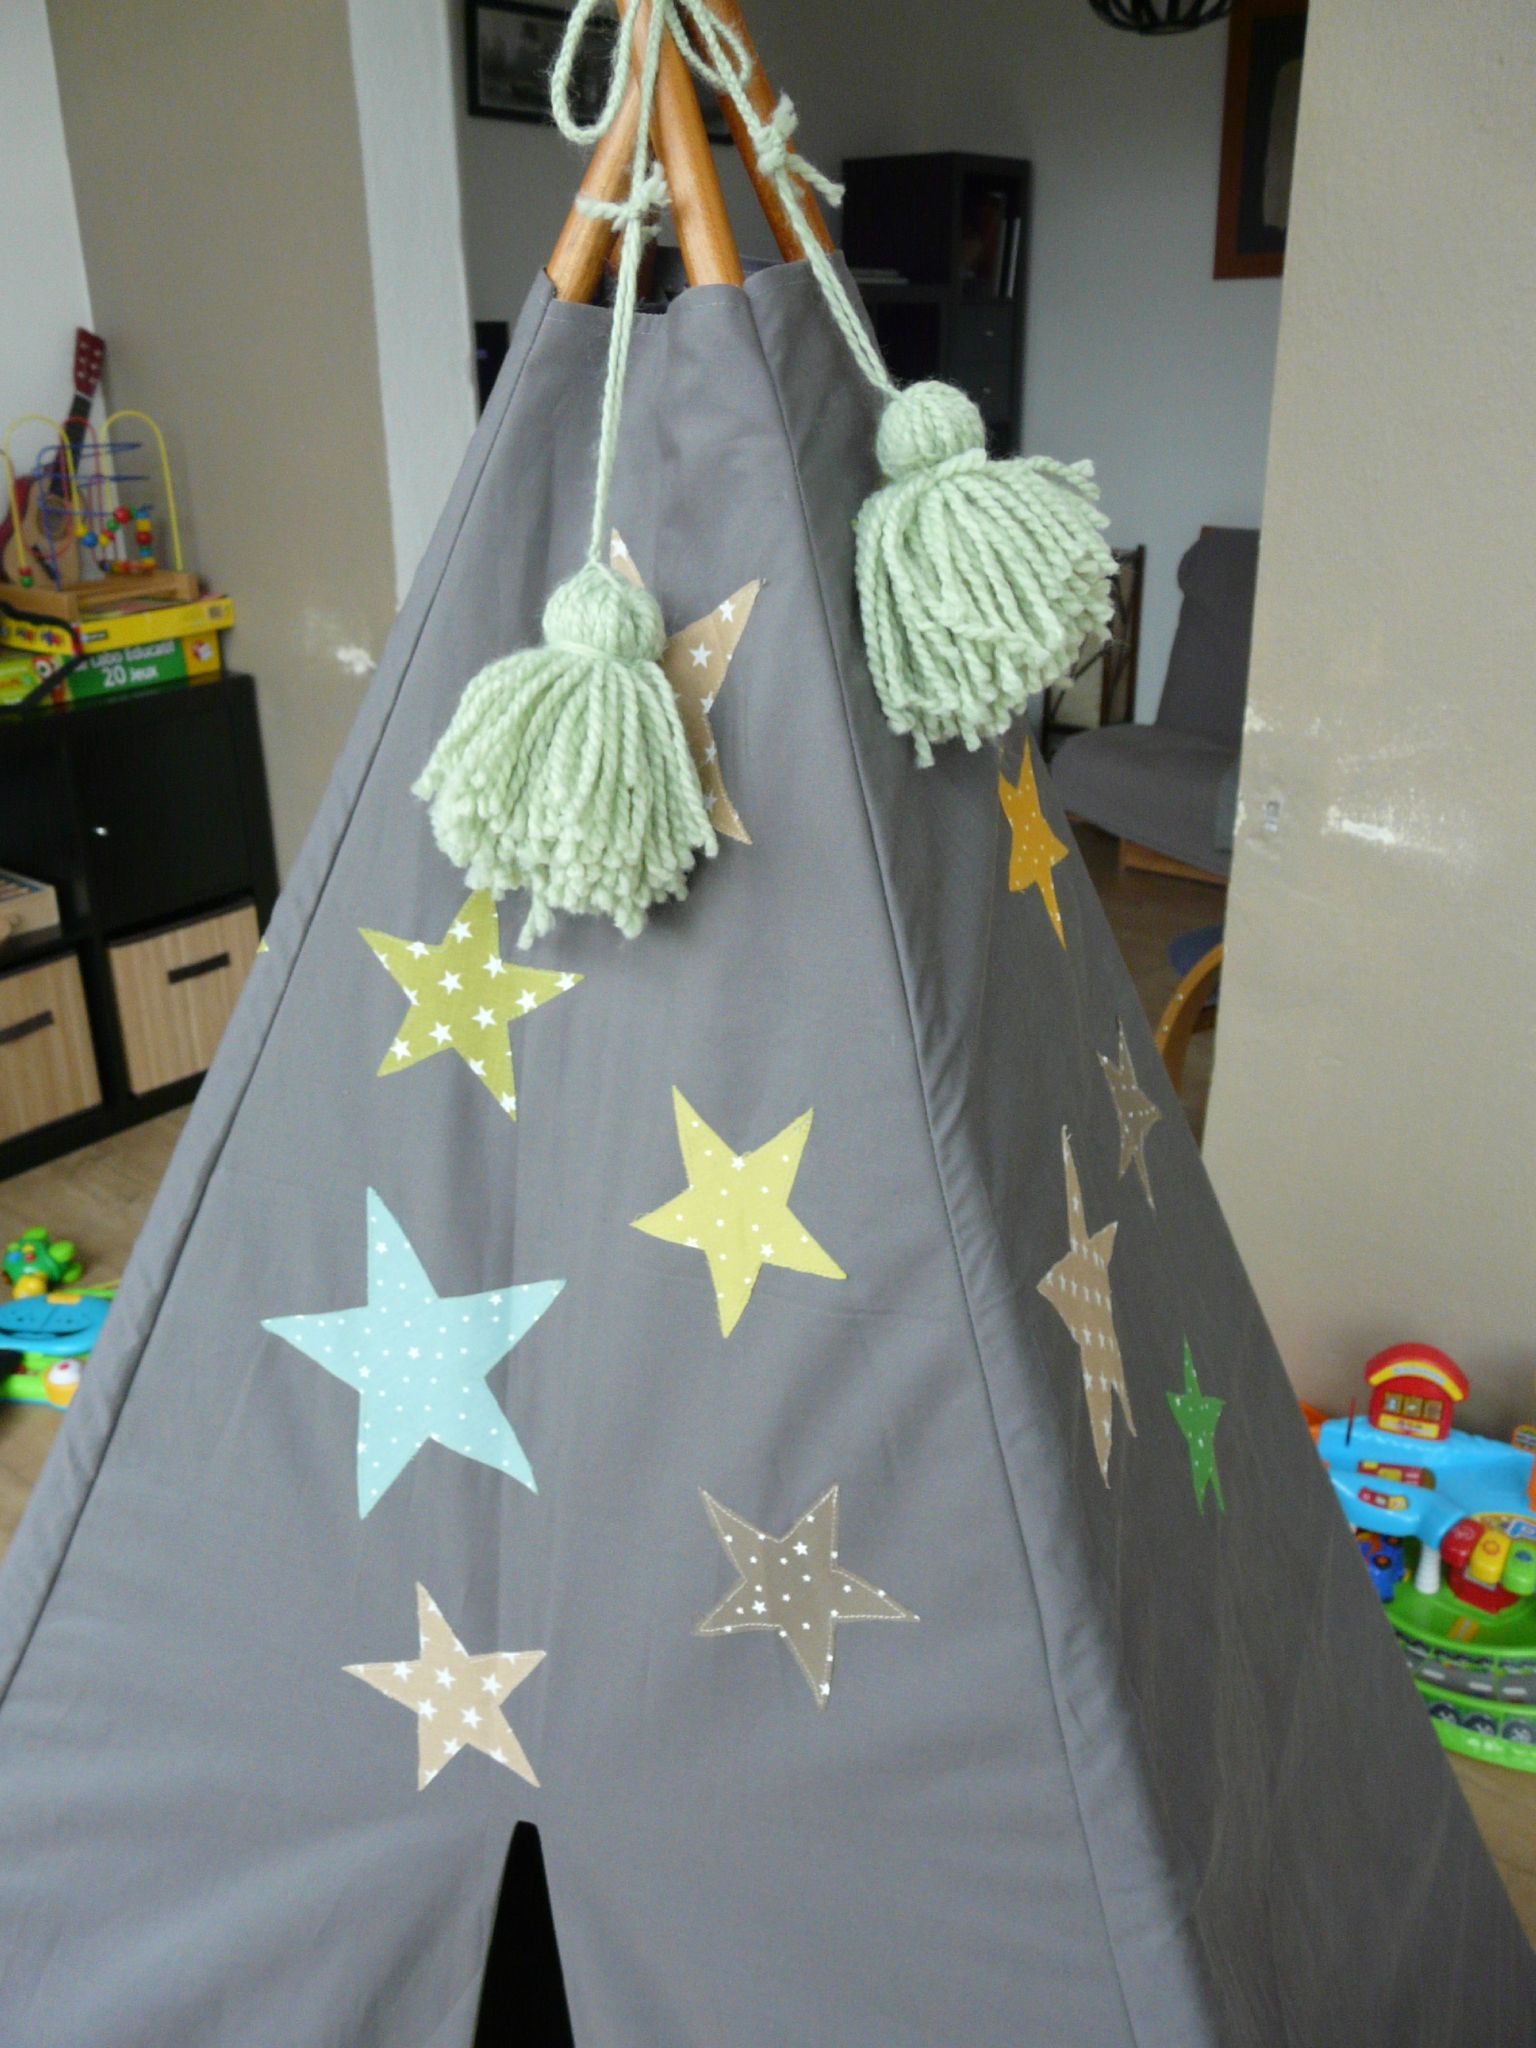 tipi des petits riens pour chambre d 39 enfants les p 39 tits gars en home made. Black Bedroom Furniture Sets. Home Design Ideas